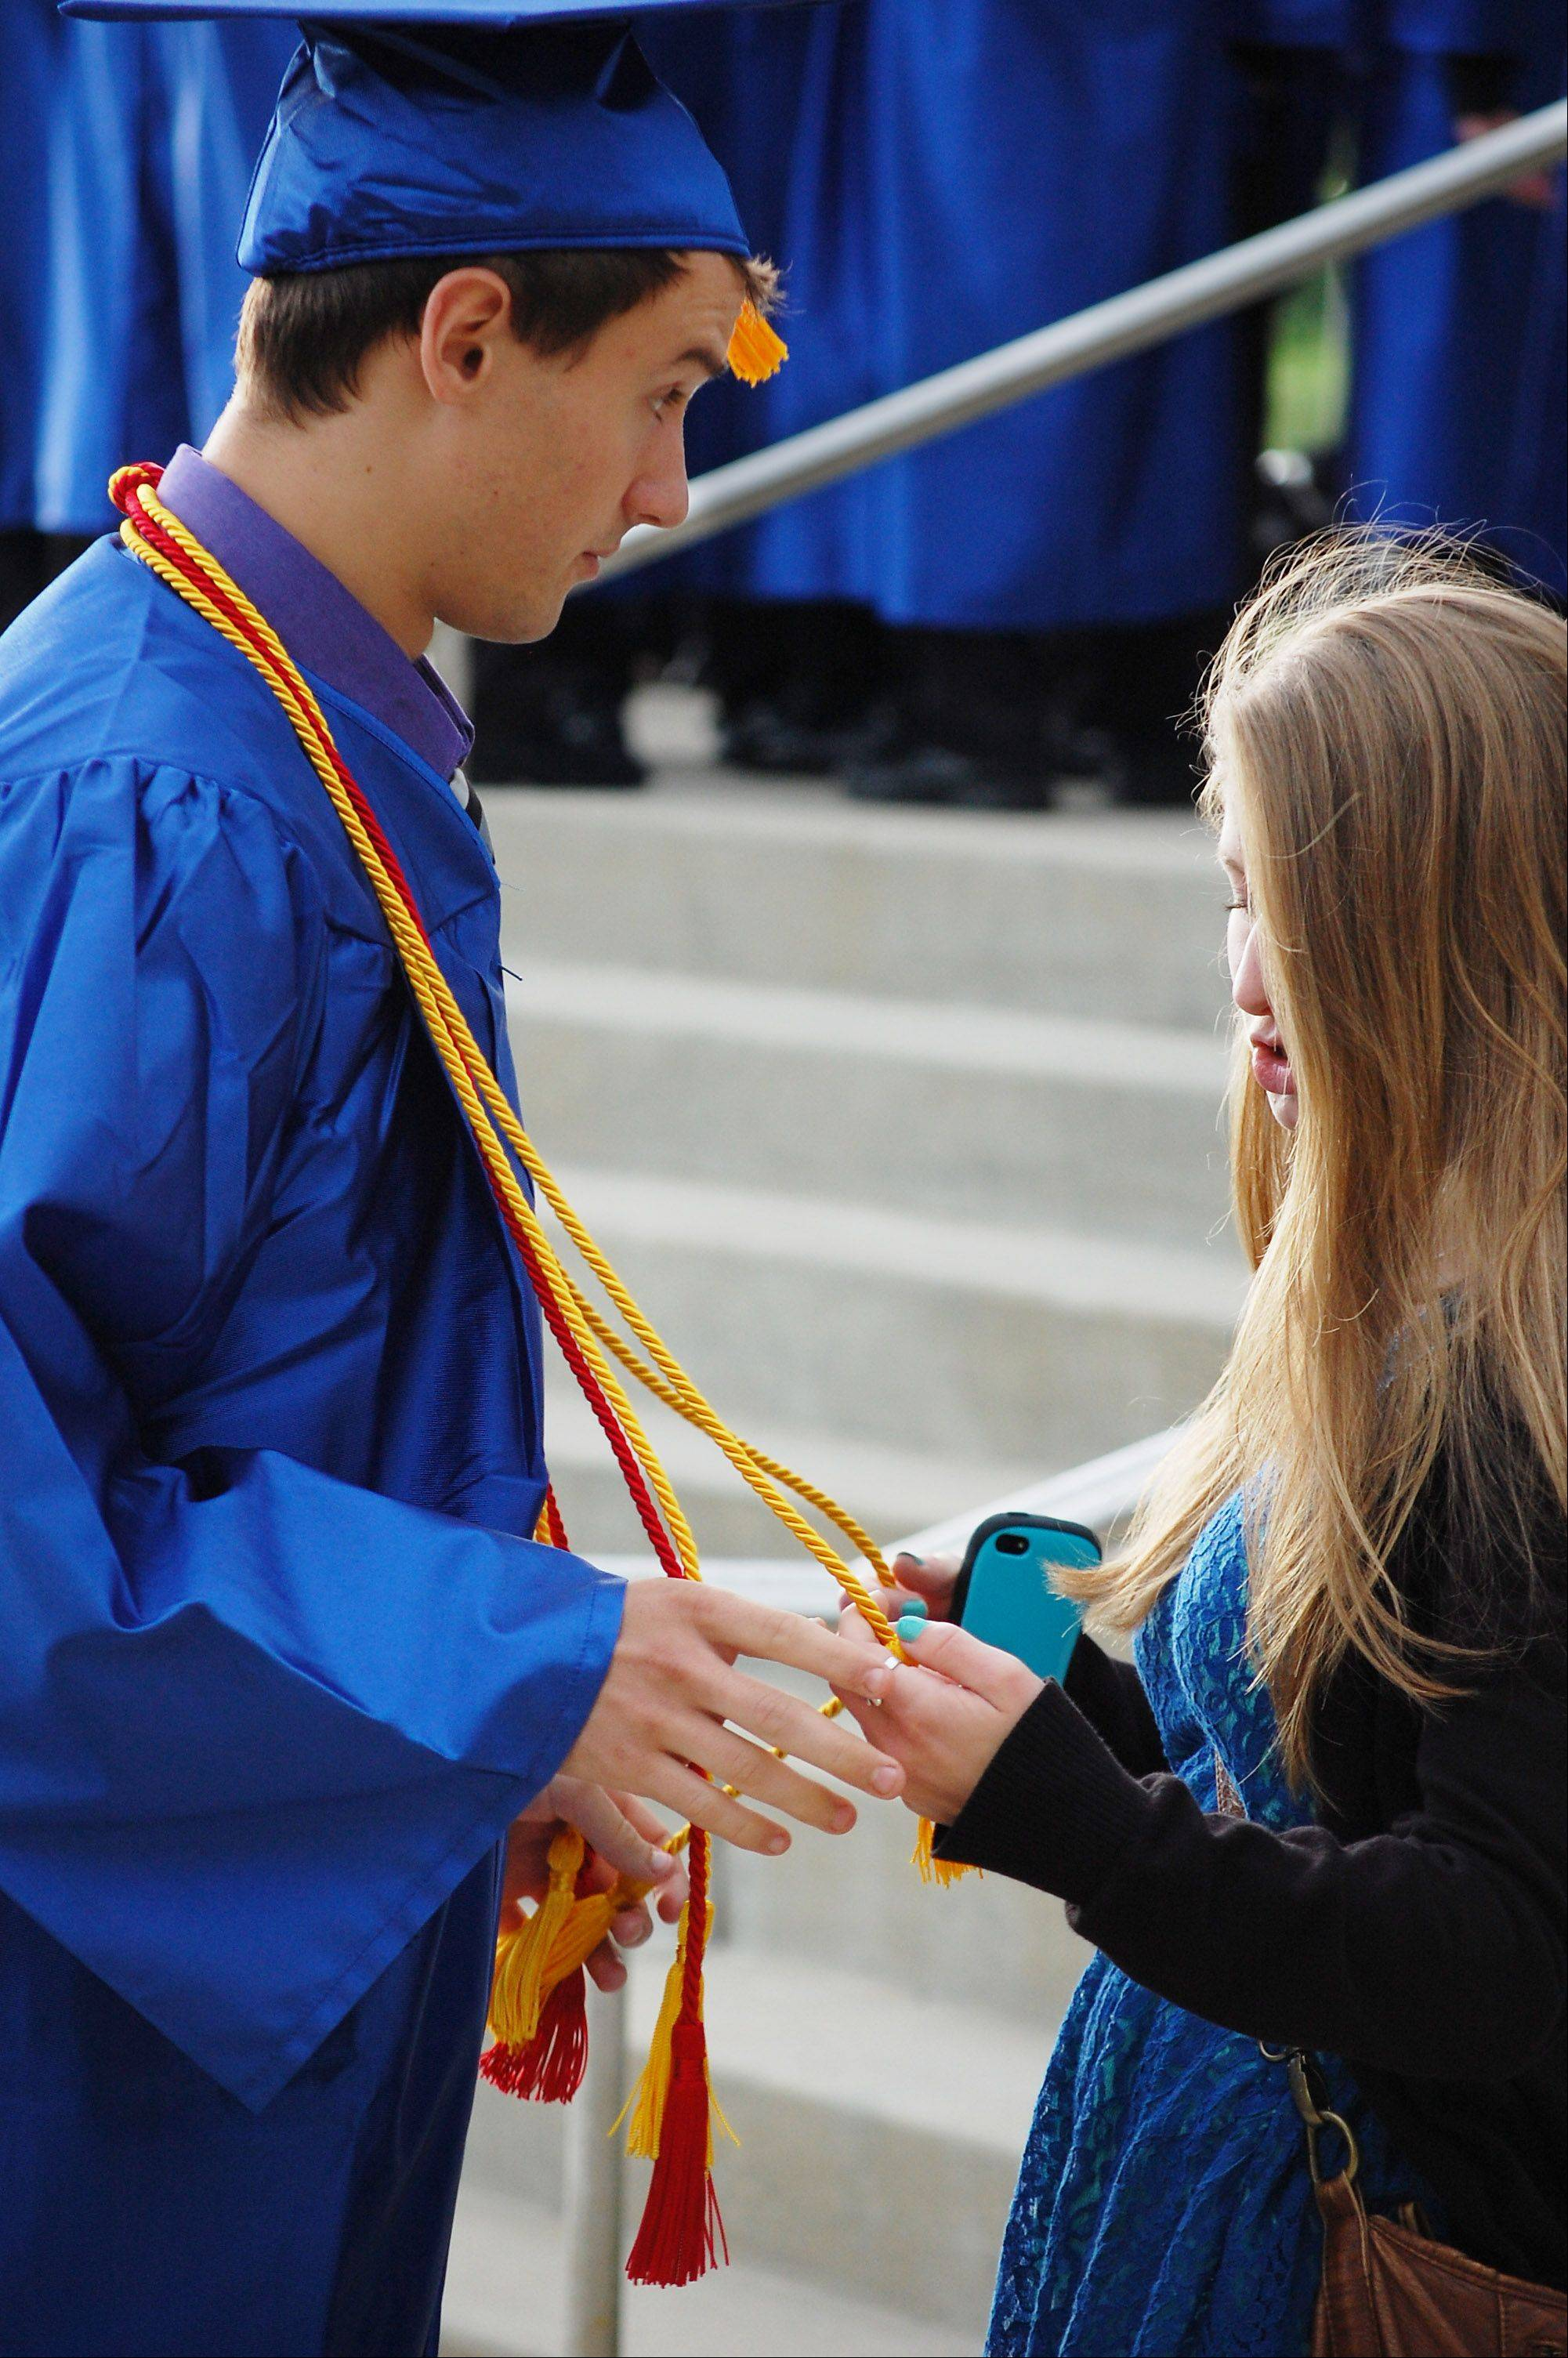 Graduate John Smith and Emma Rabelhofer, 19, of St. Charles prepare for the Burlington Central High School graduation ceremony Friday at Elgin Community College in Elgin.